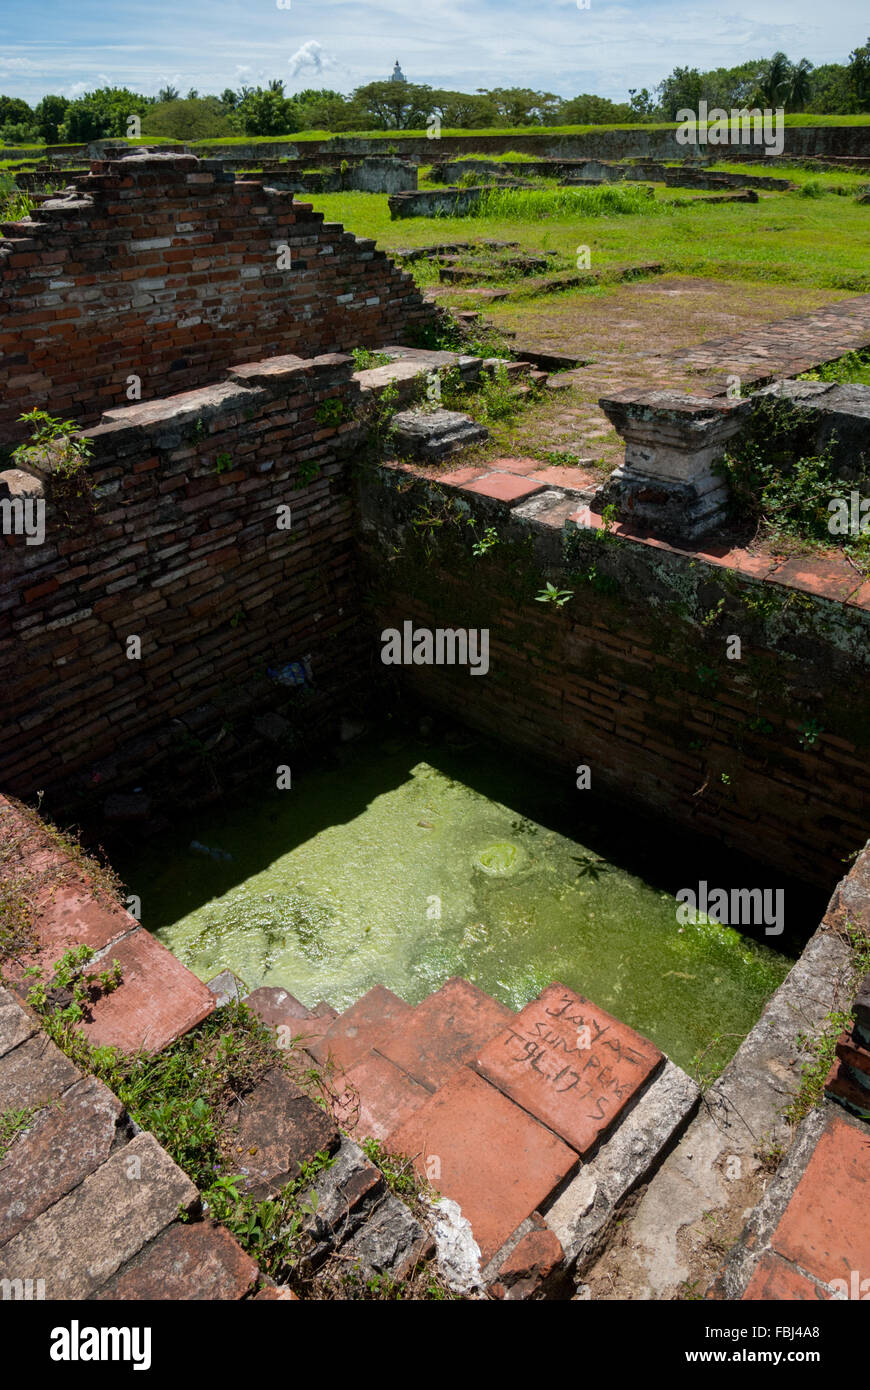 Ruins of old Banten Sultanate royal pond at Surosowan palace complex, Java, Indonesia. - Stock Image